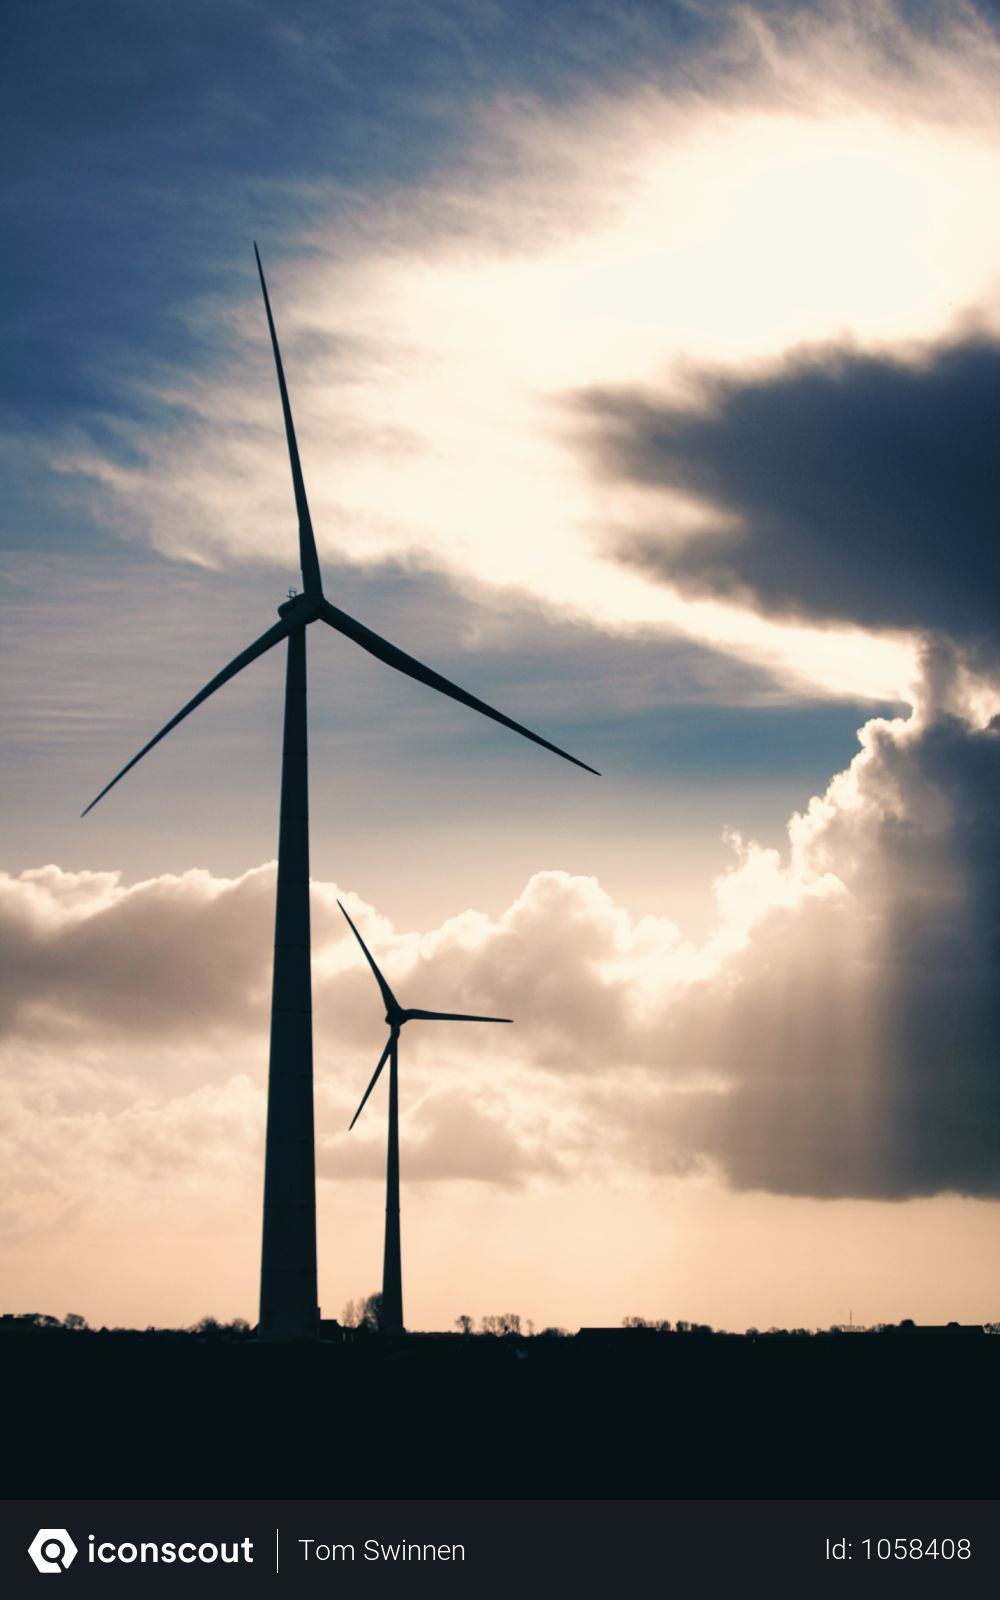 Free Silhouette Photo Of Two Wind Mills During Golden Hour Photo Download In Png Jpg Format Renewable Sources Of Energy Wind Turbine Sustainable Energy